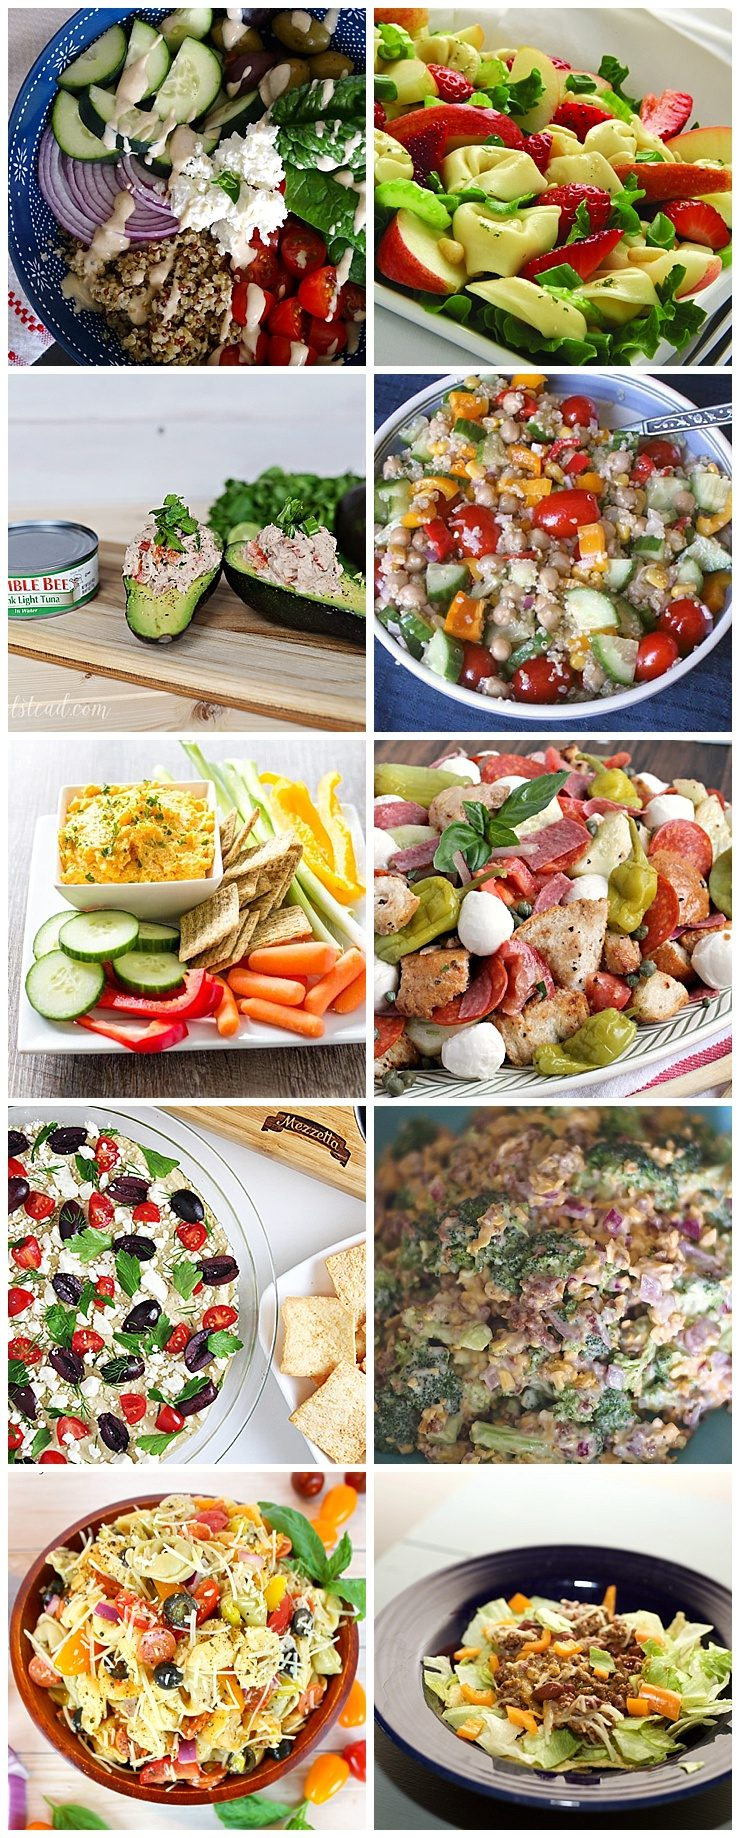 Summer Salads & Dips